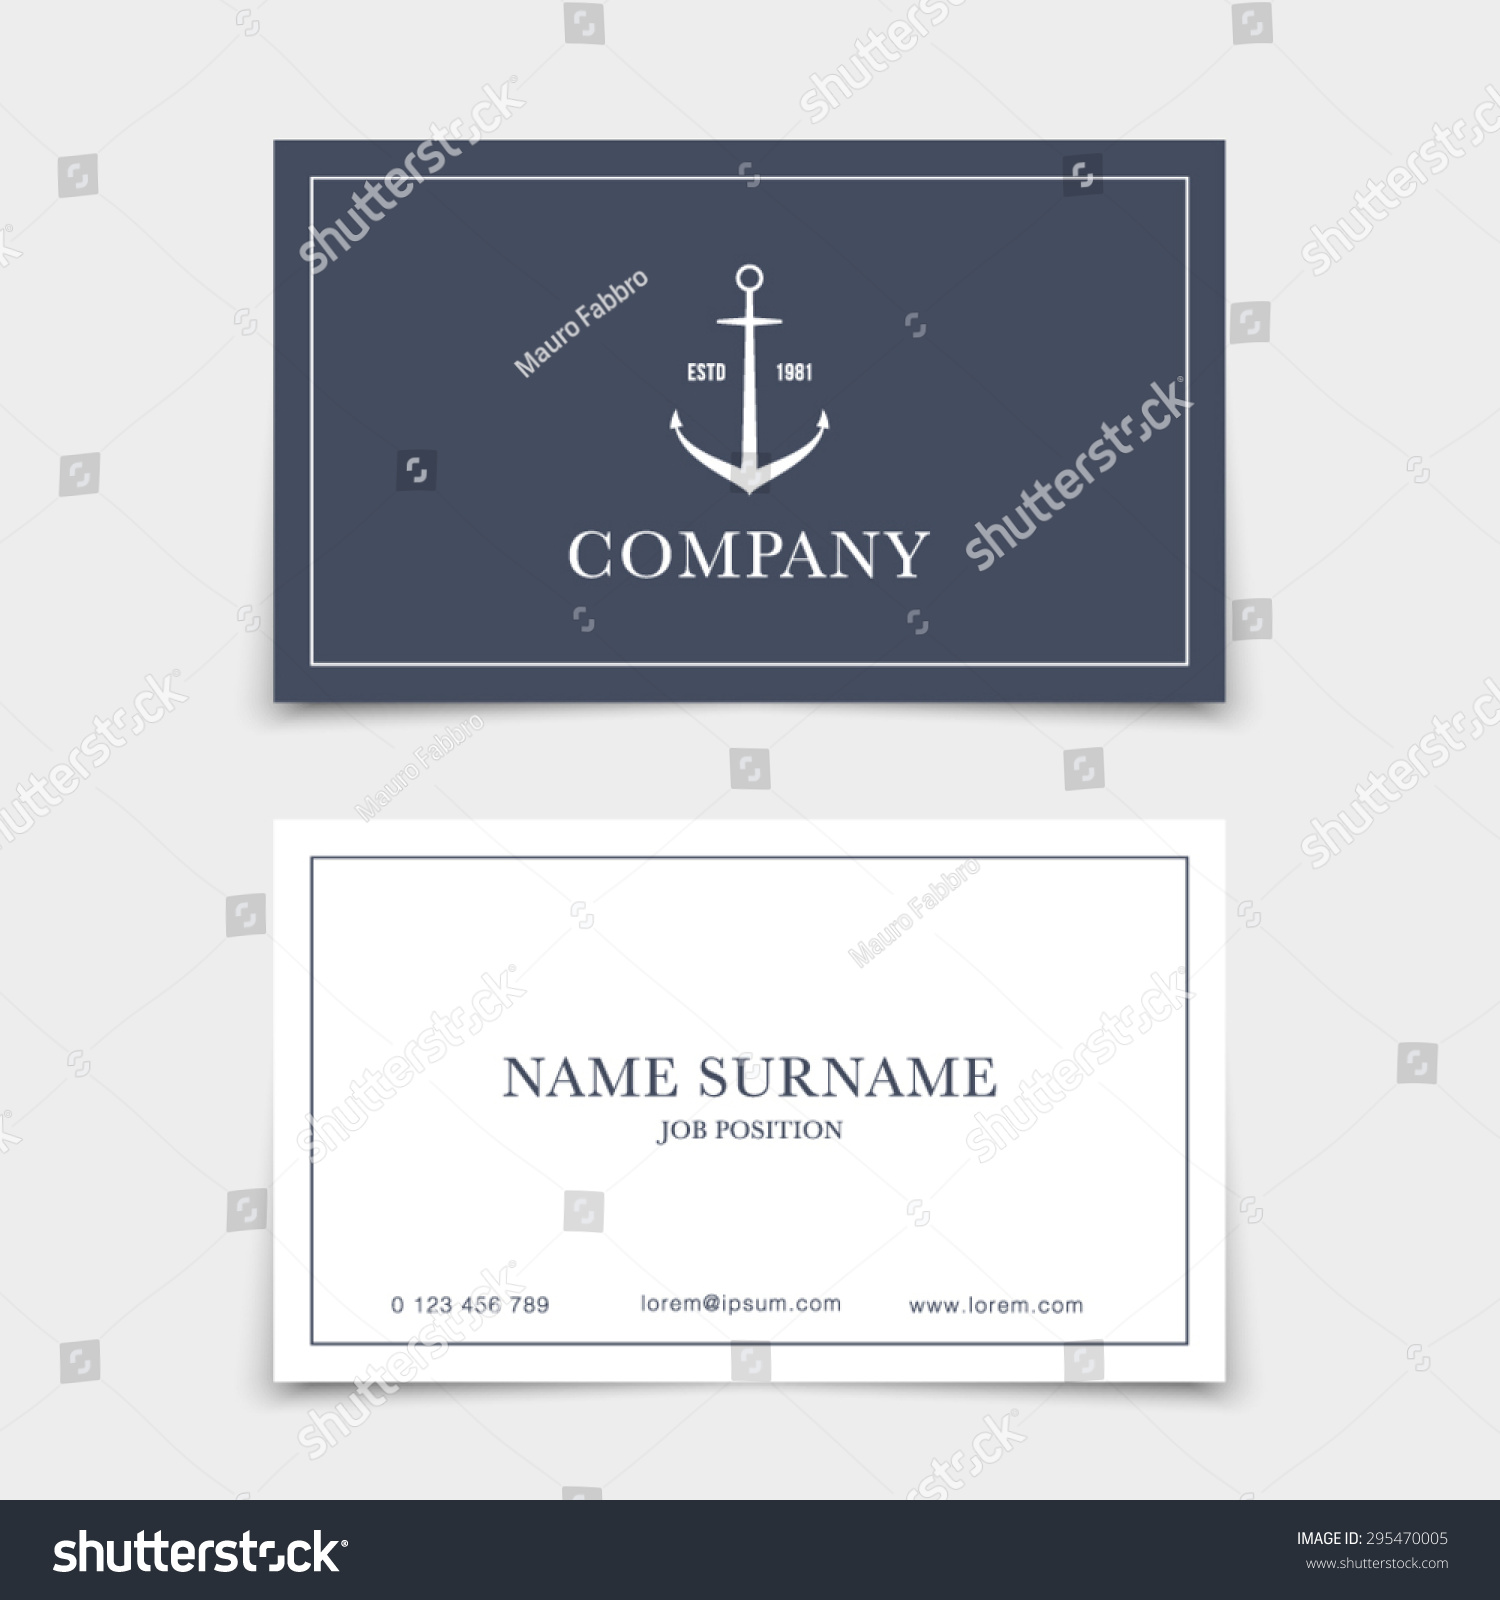 Business Card Retro Vintage Logo Marine Stock Vector HD (Royalty ...